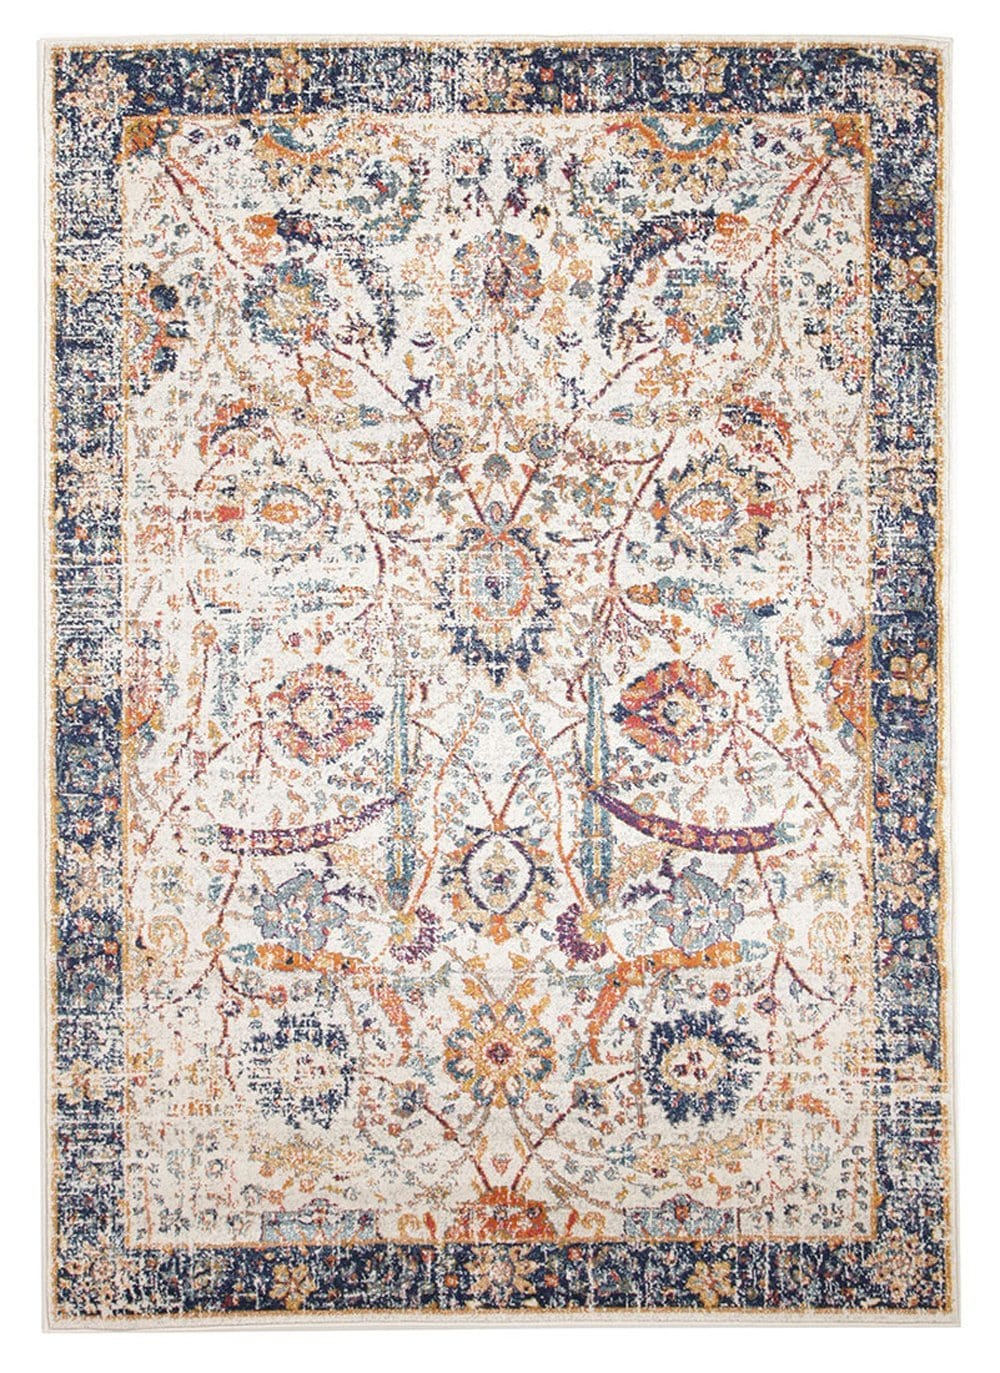 Sardis Orange & Blue Multi Colour Distressed Transitional Rug